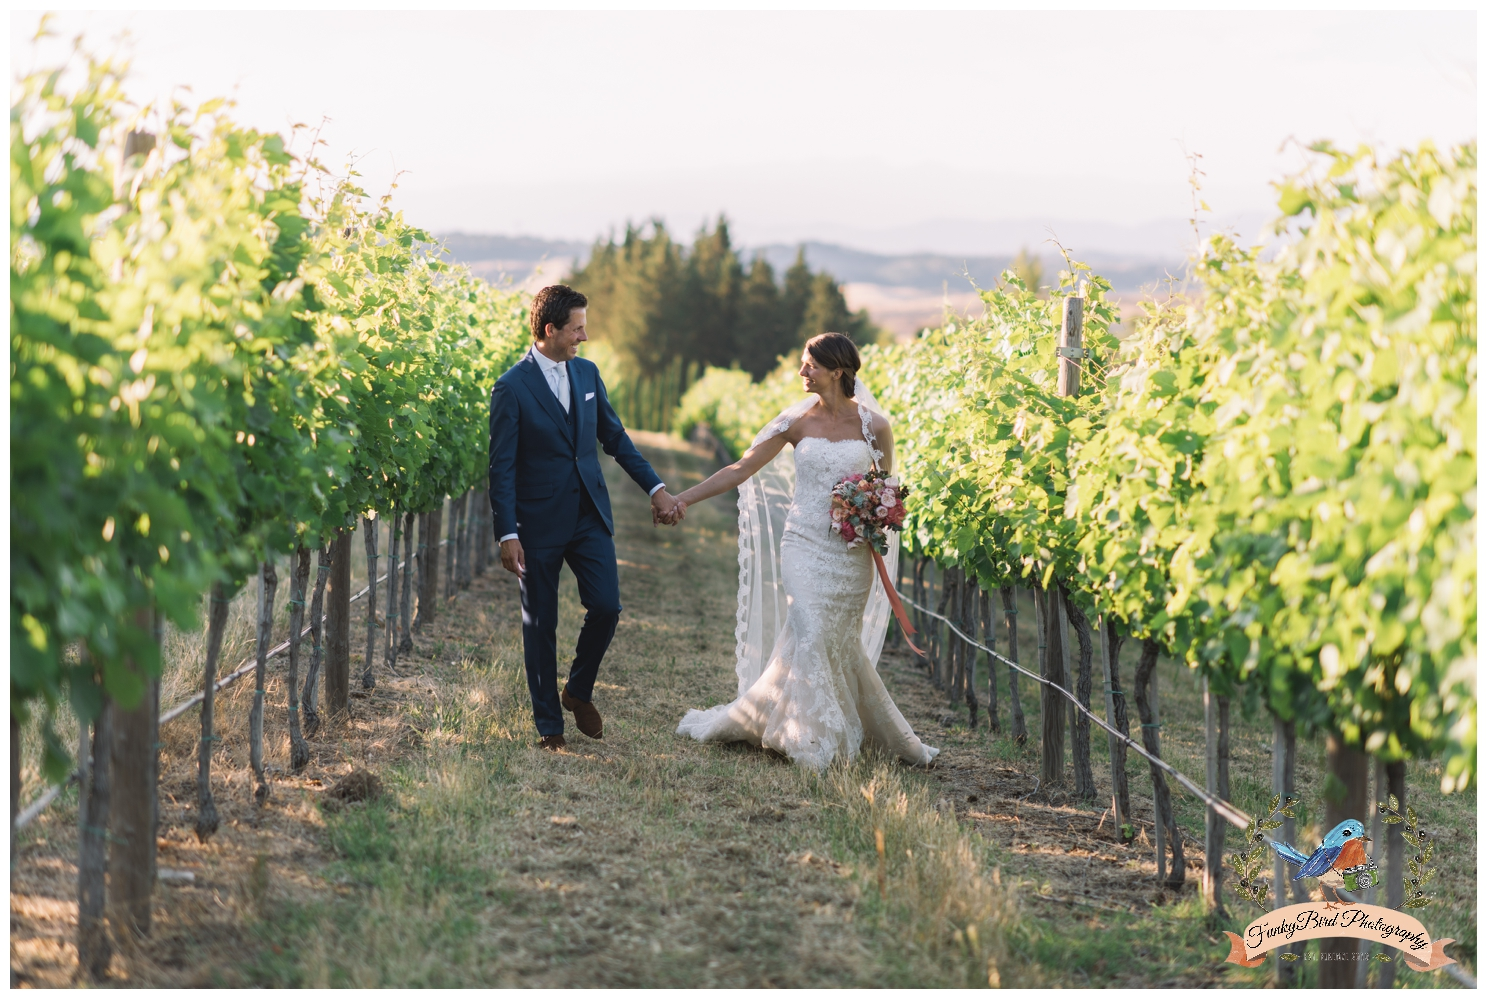 Wedding_Photographer_Tuscany_Italy_0026.jpg